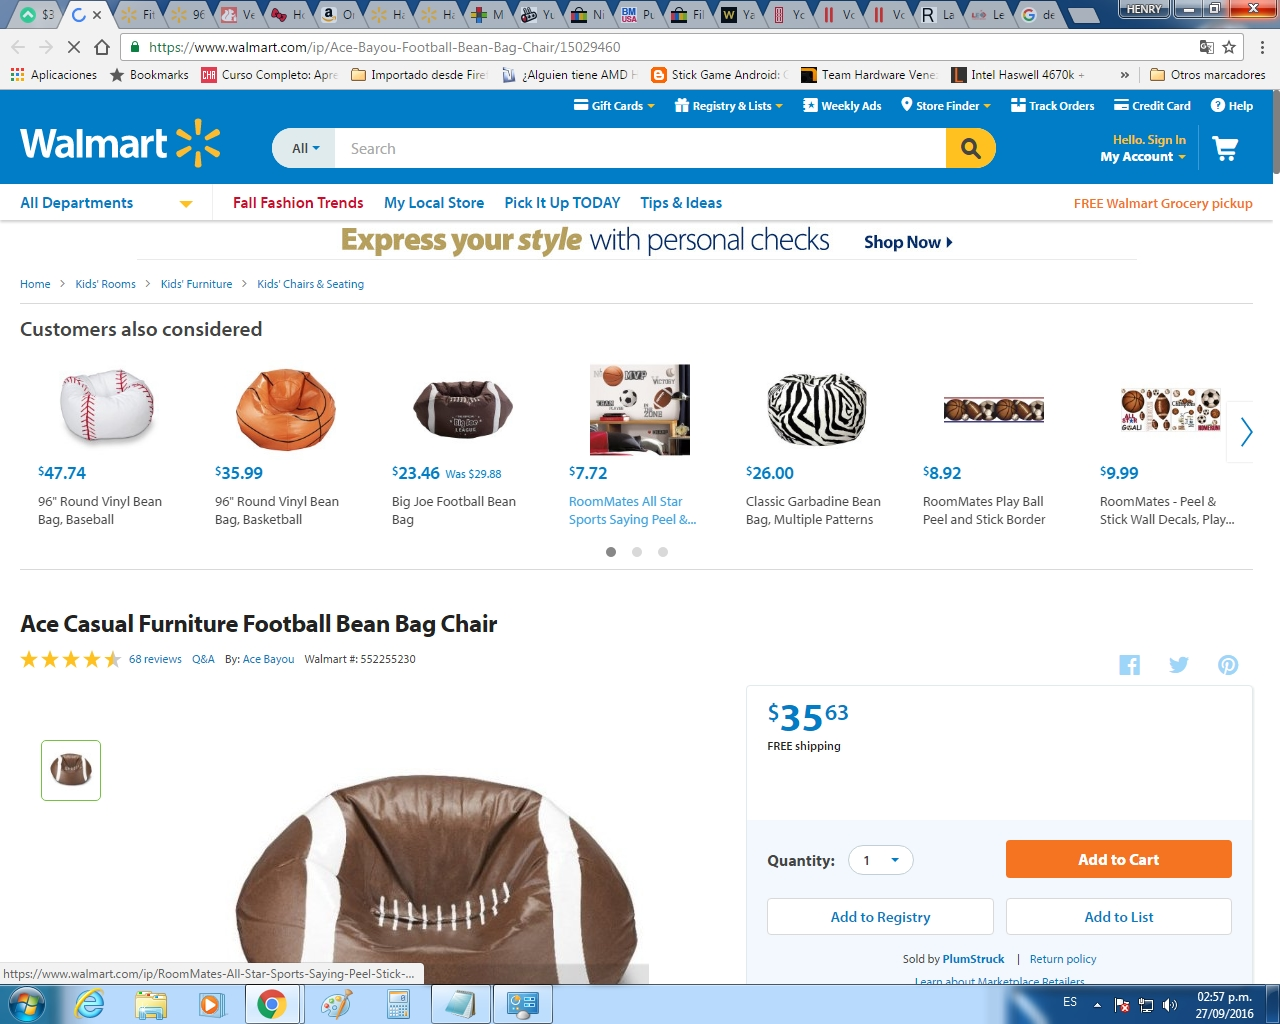 football bean bag chair aeron review 2017 40 off plumstruck coupon code screenshot verified